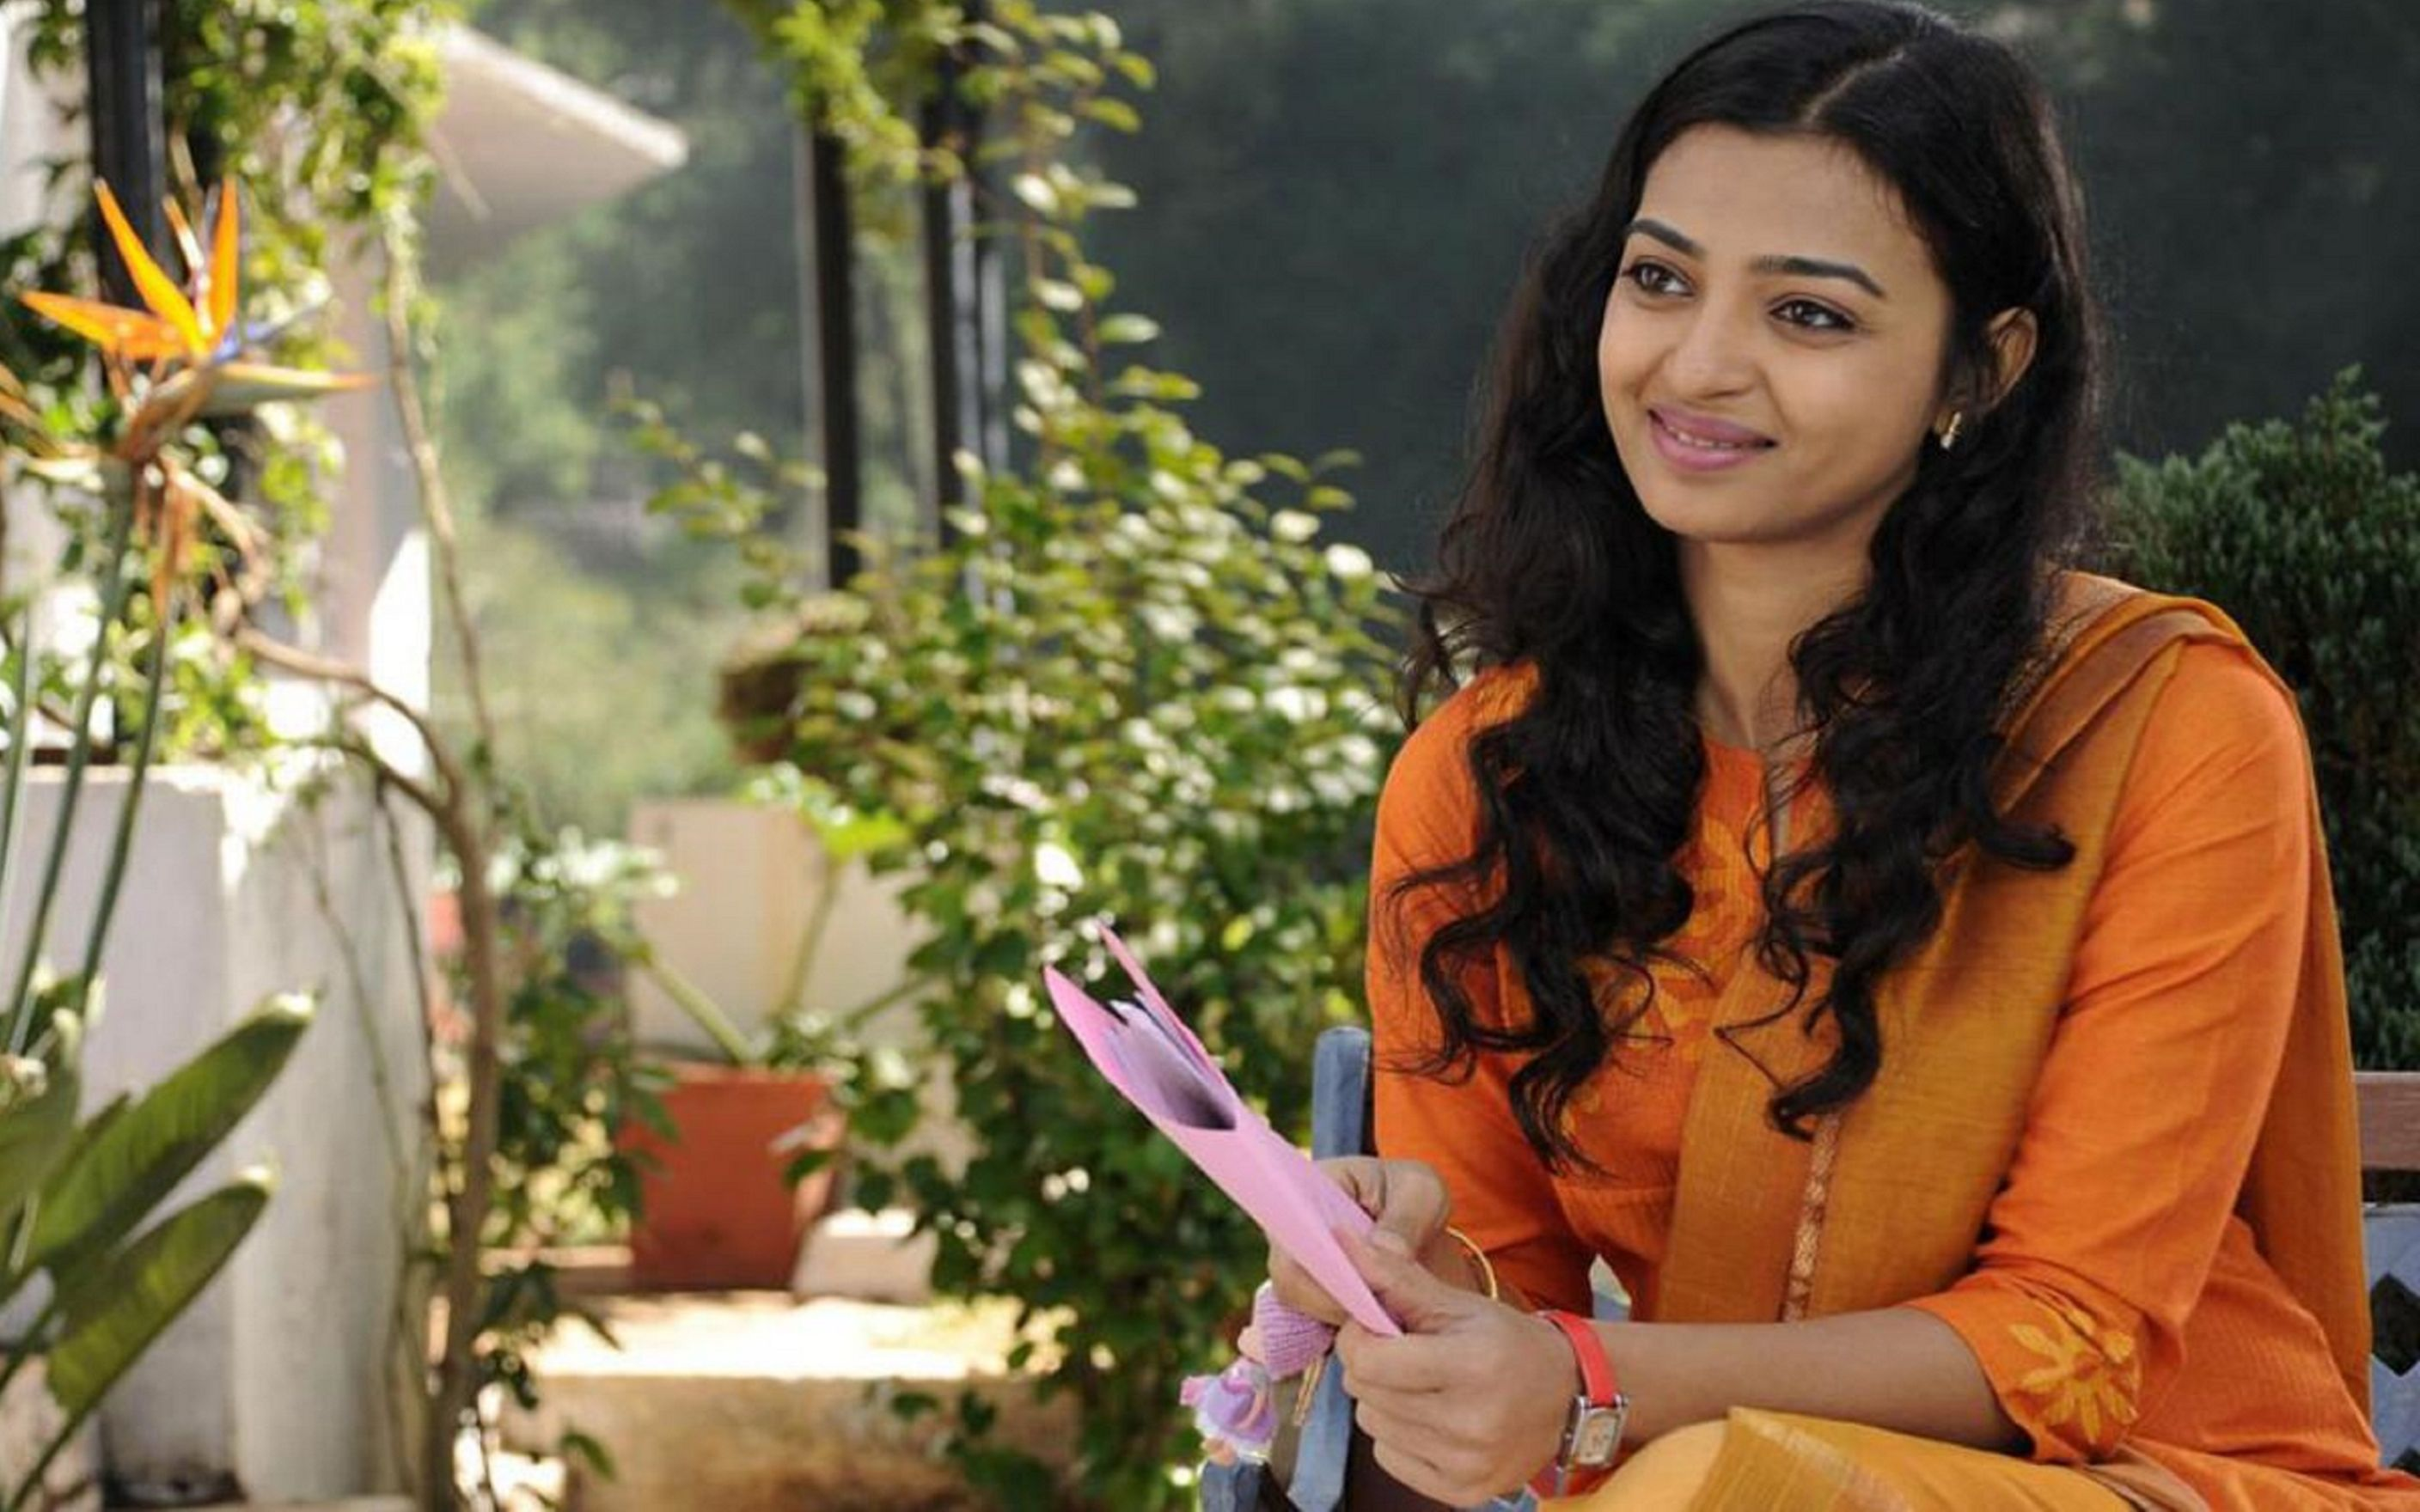 Download free HD Radhika Apte Beautiful HD Wallpaper, image